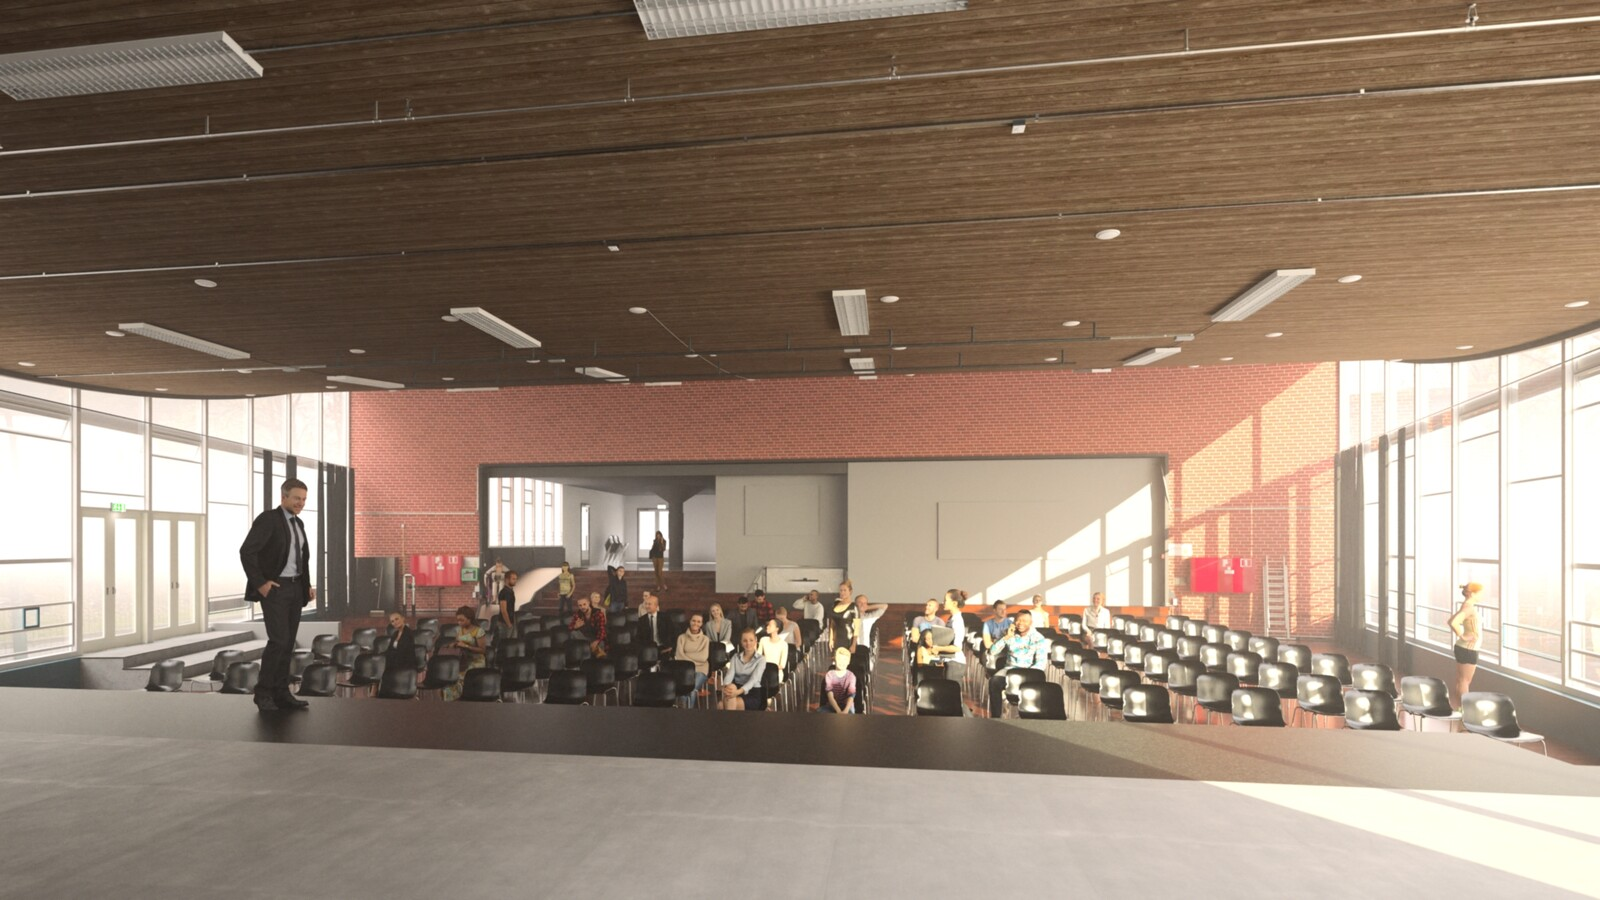 SketchUp 2021 + Thea Render V3 Broedplaats LELY (The Lely Incubator) Auditorium Amsterdam Showroom Final-Scene 7 21m15s HD1080 1536sp